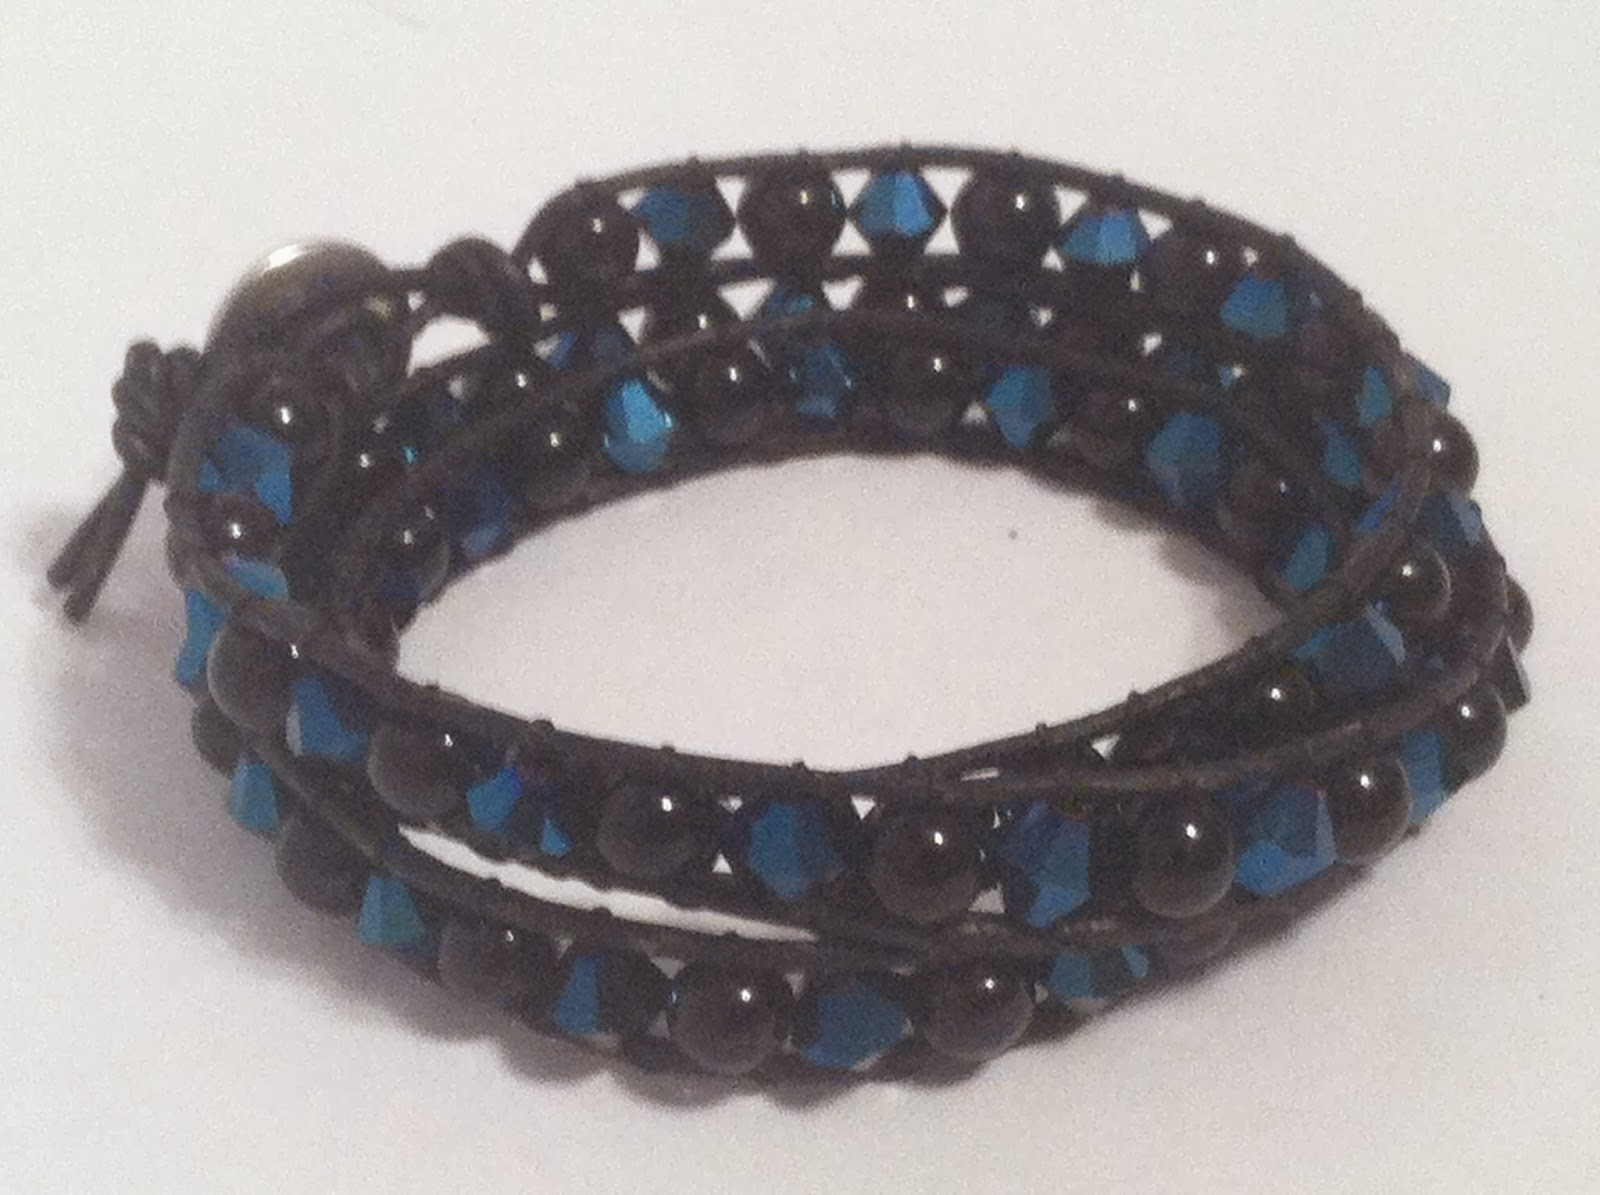 https://www.etsy.com/listing/176256323/leather-beaded-metal-button-clasp-wrap?ref=shop_home_active_1